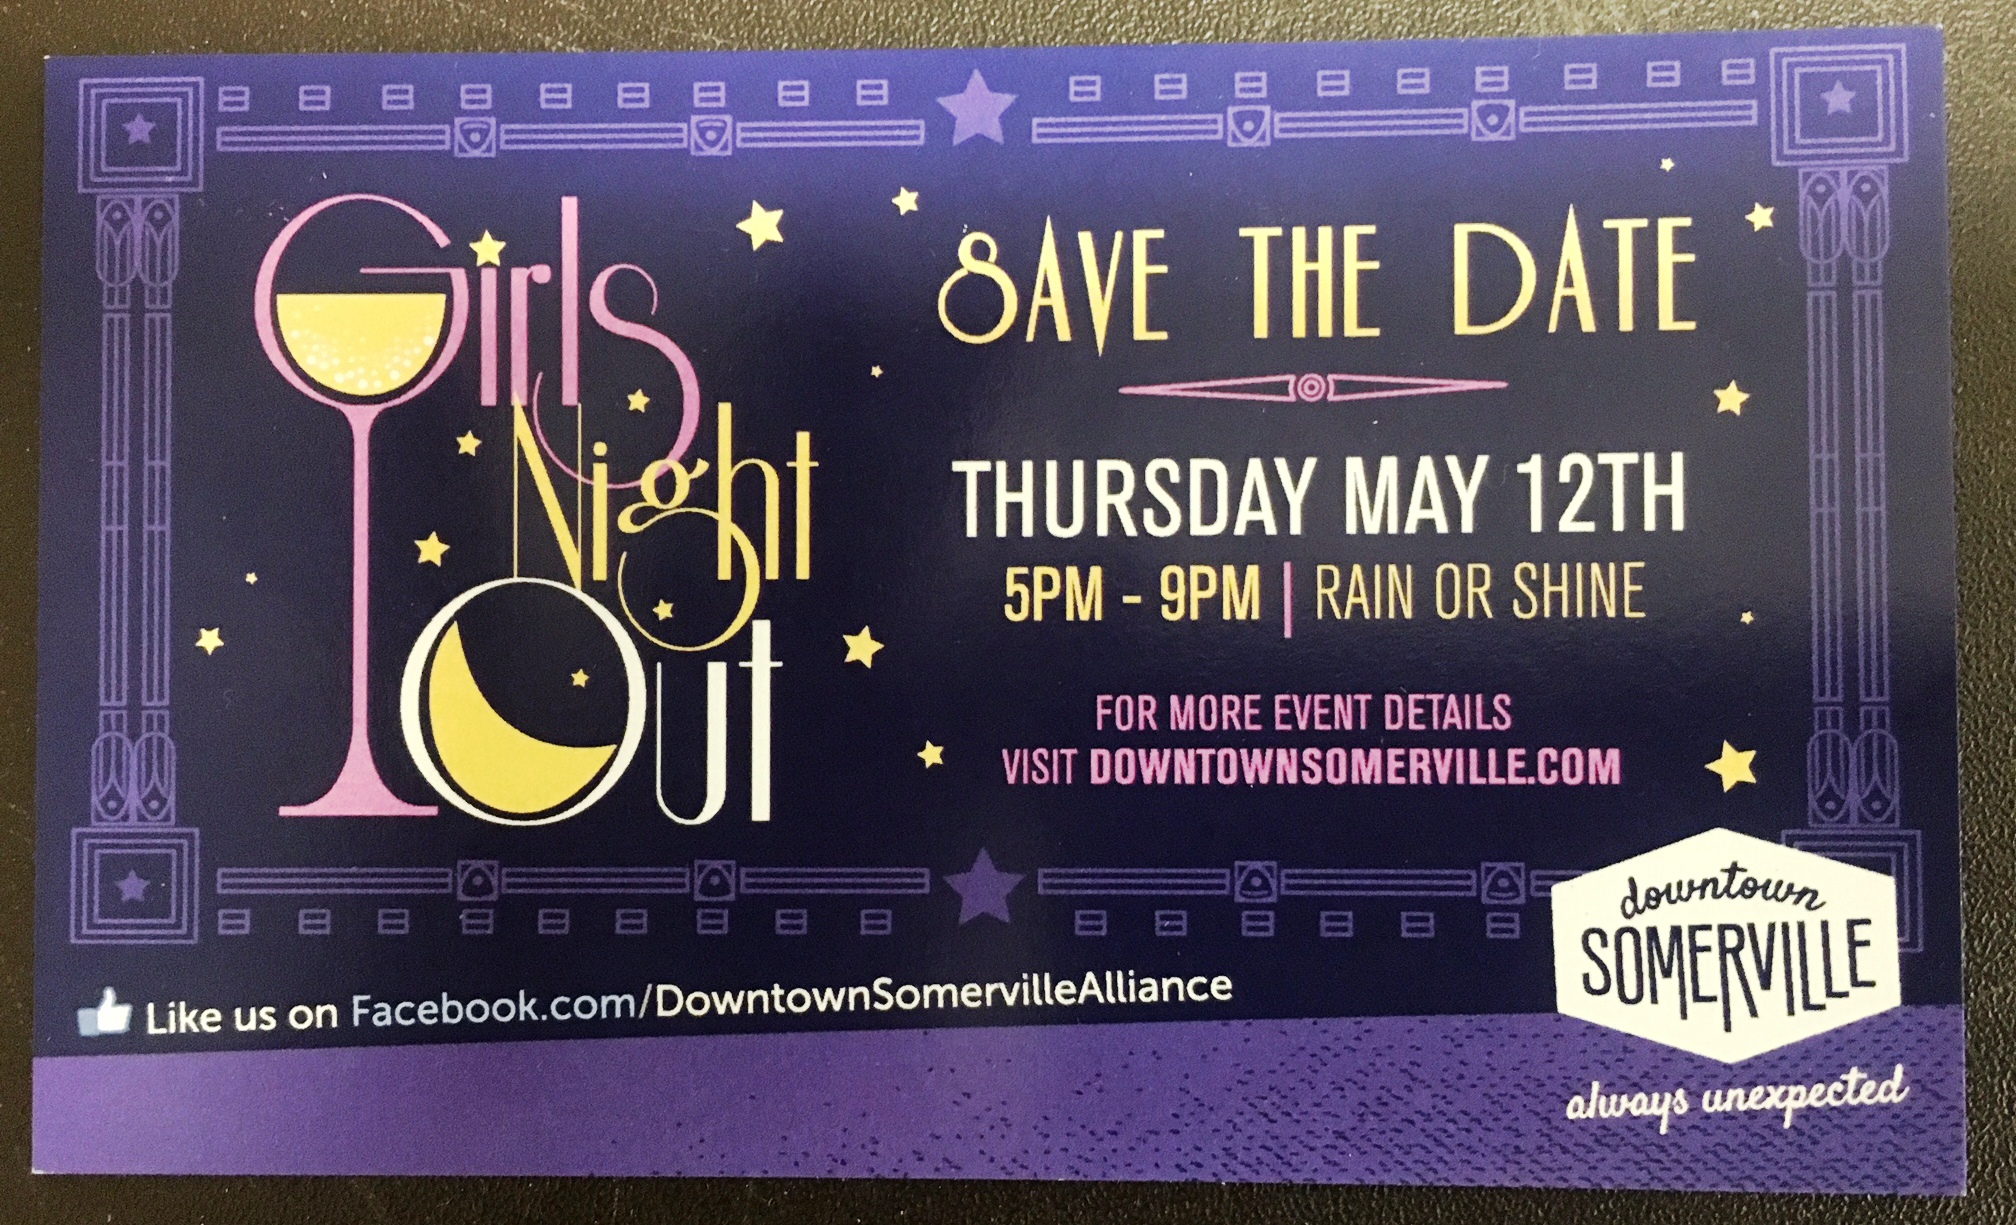 Downtown Somerville Invites the Ladies to an Exclusive Girls Night